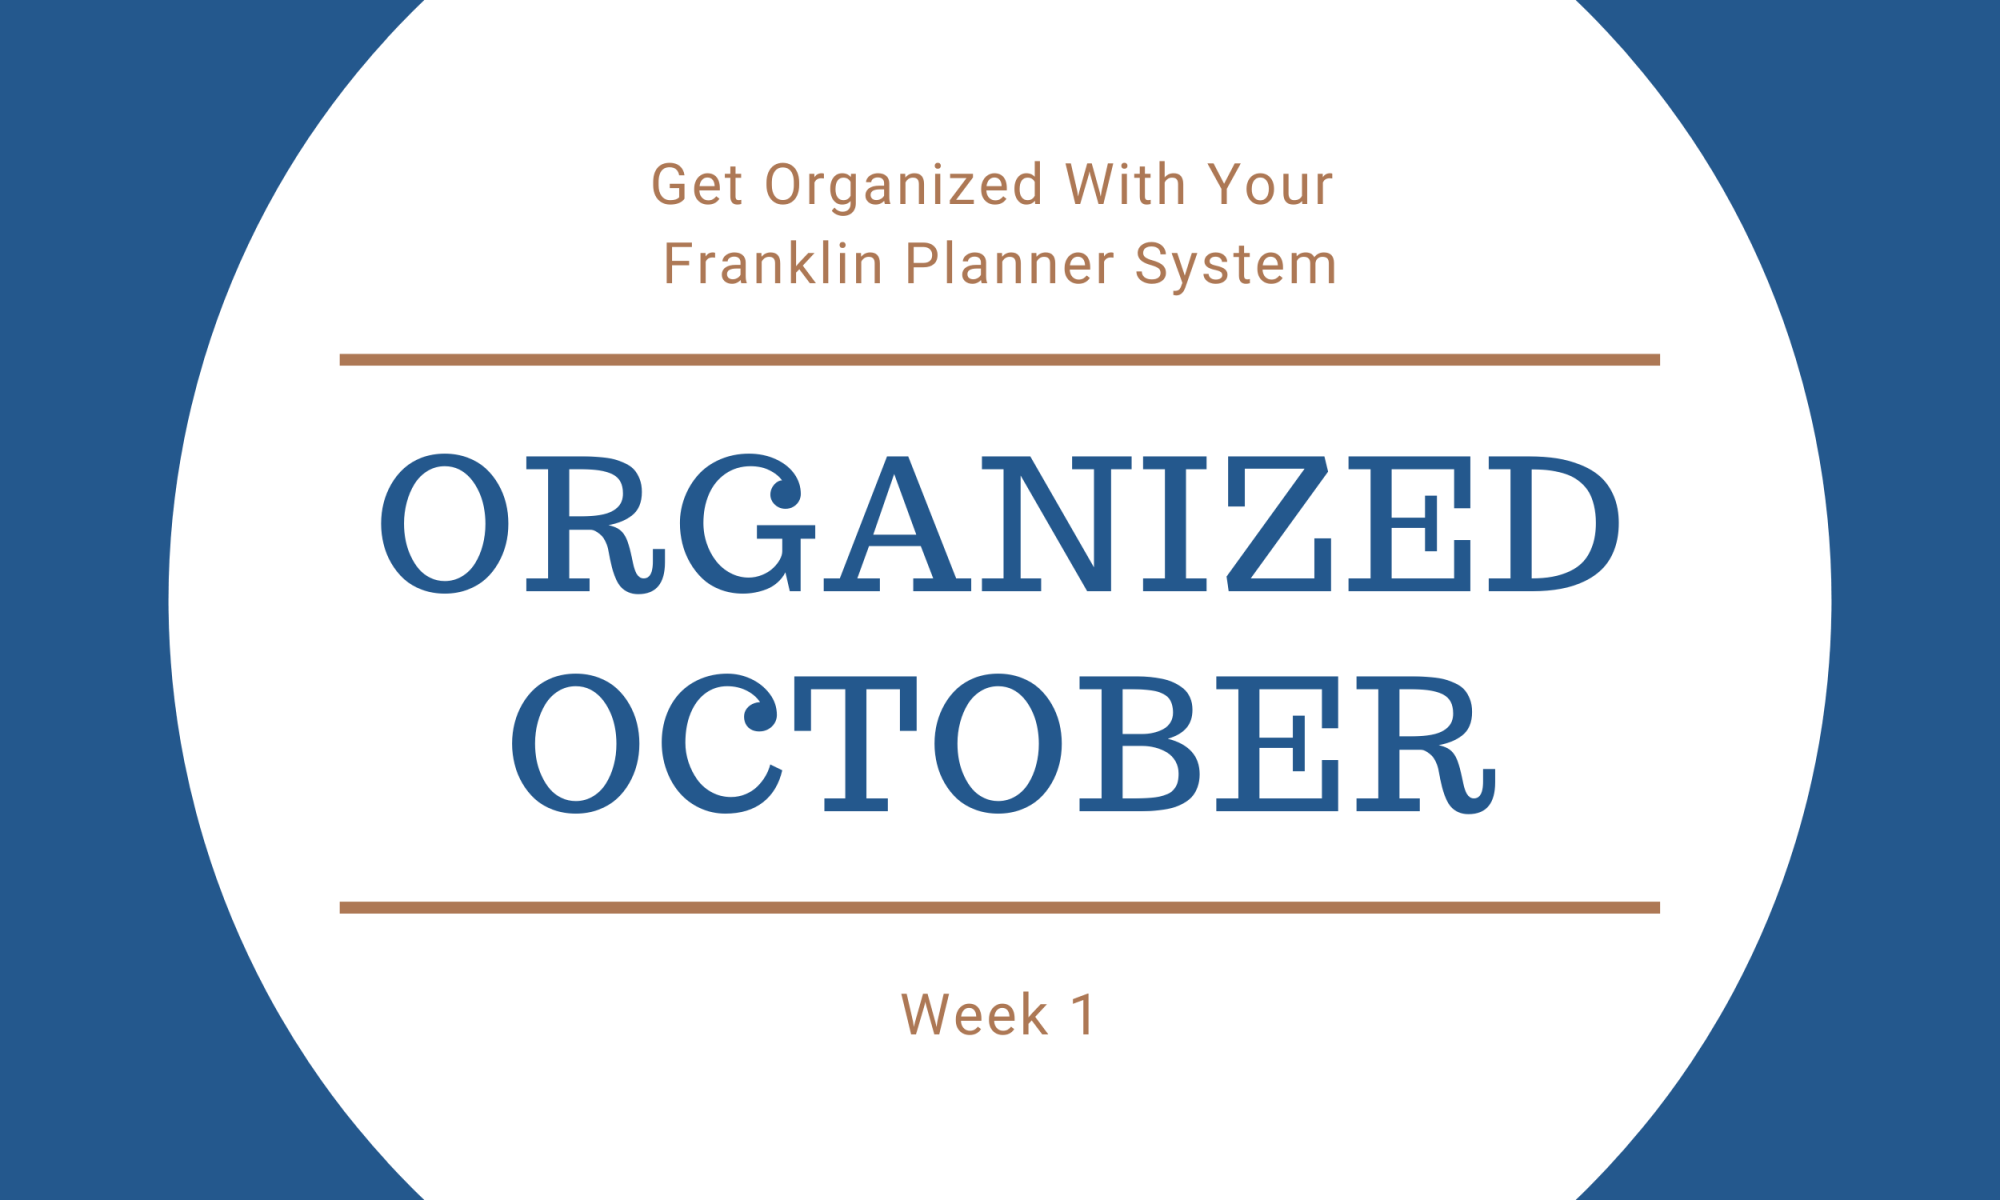 Organized October Week 1